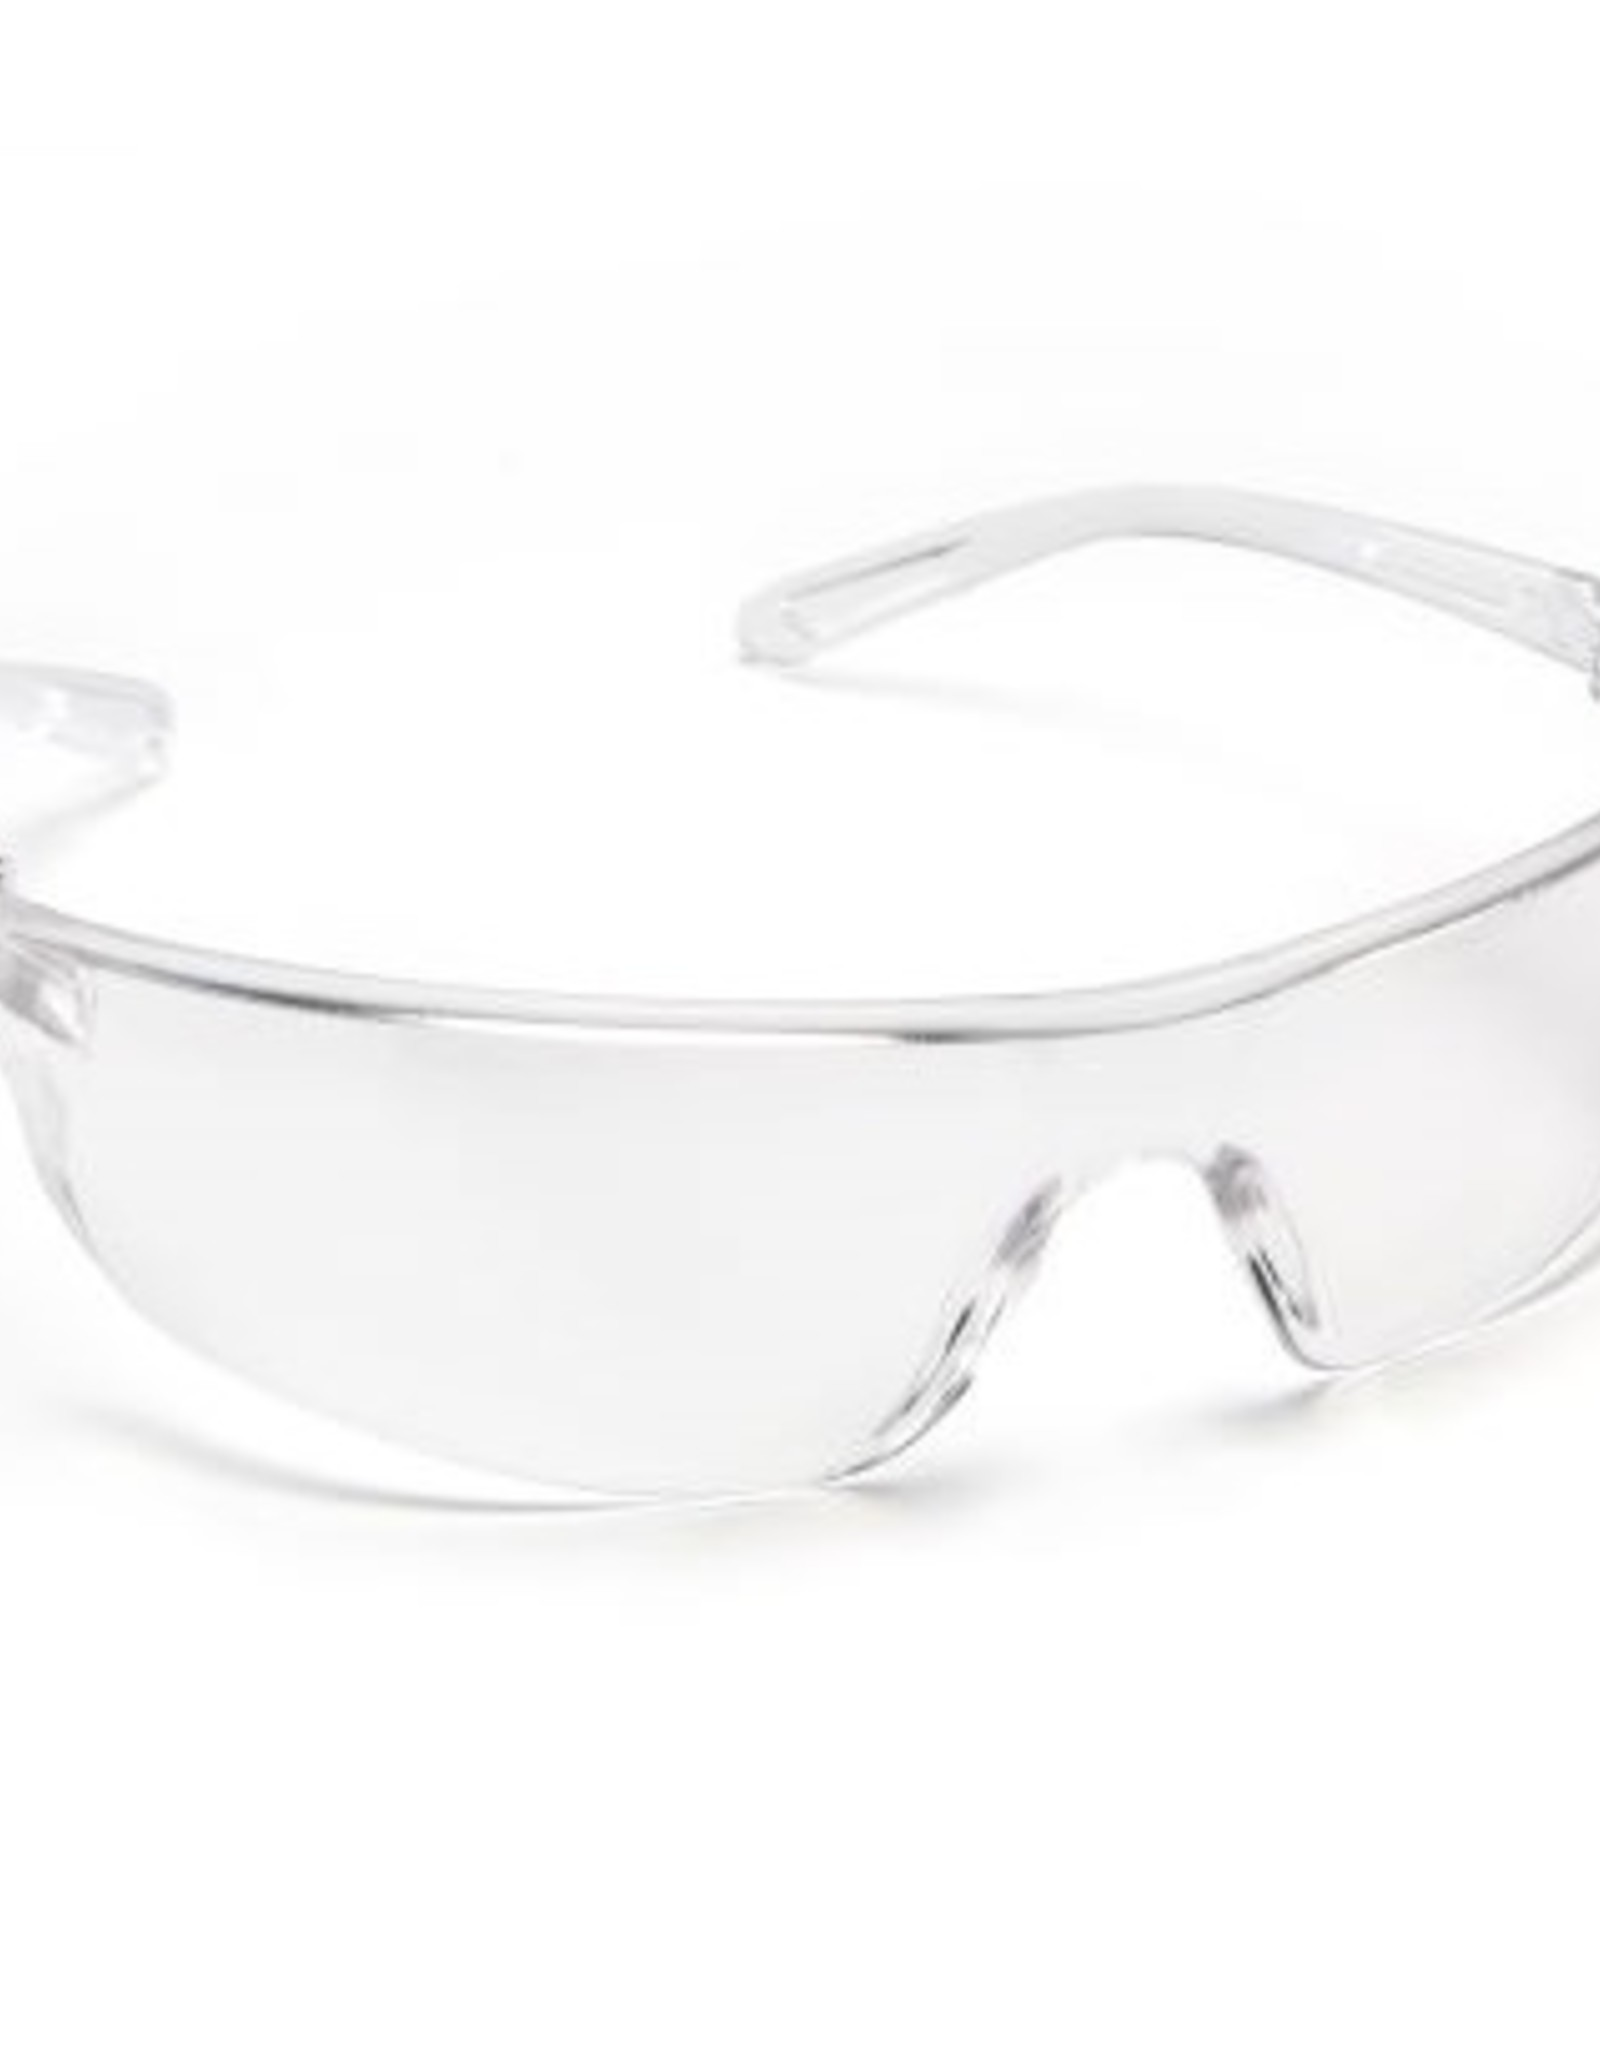 Force360 Force360 Air Super Light Safety Glasses